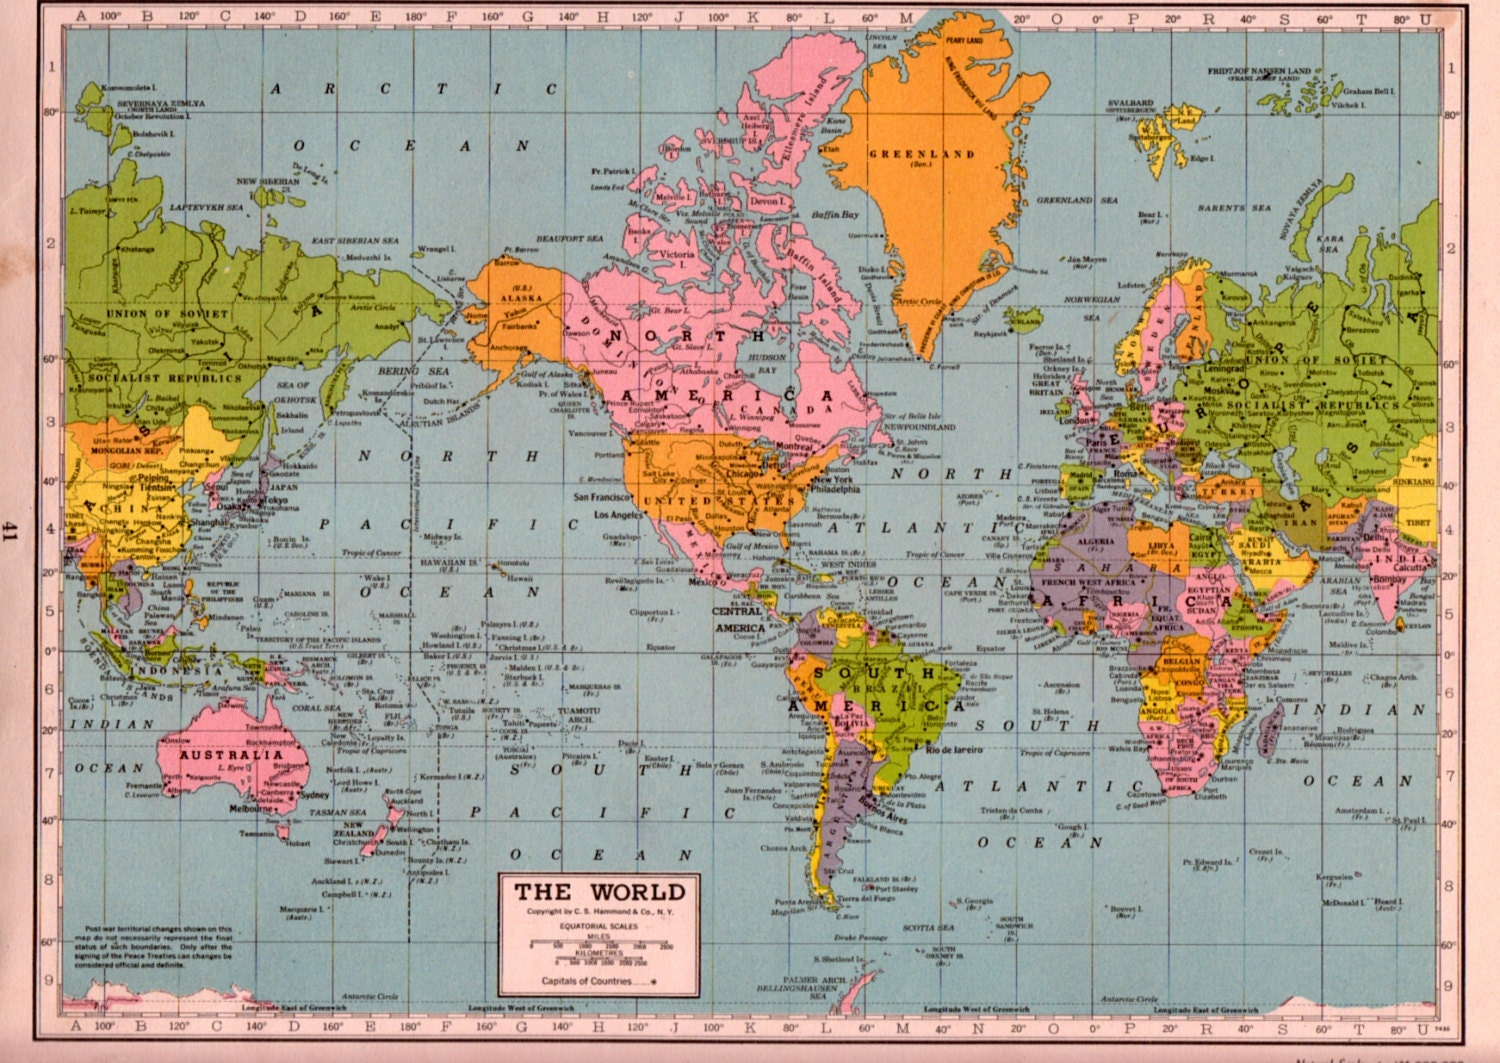 1940s WORLD MAP post WW2 map of the World by theStoryOfVintage